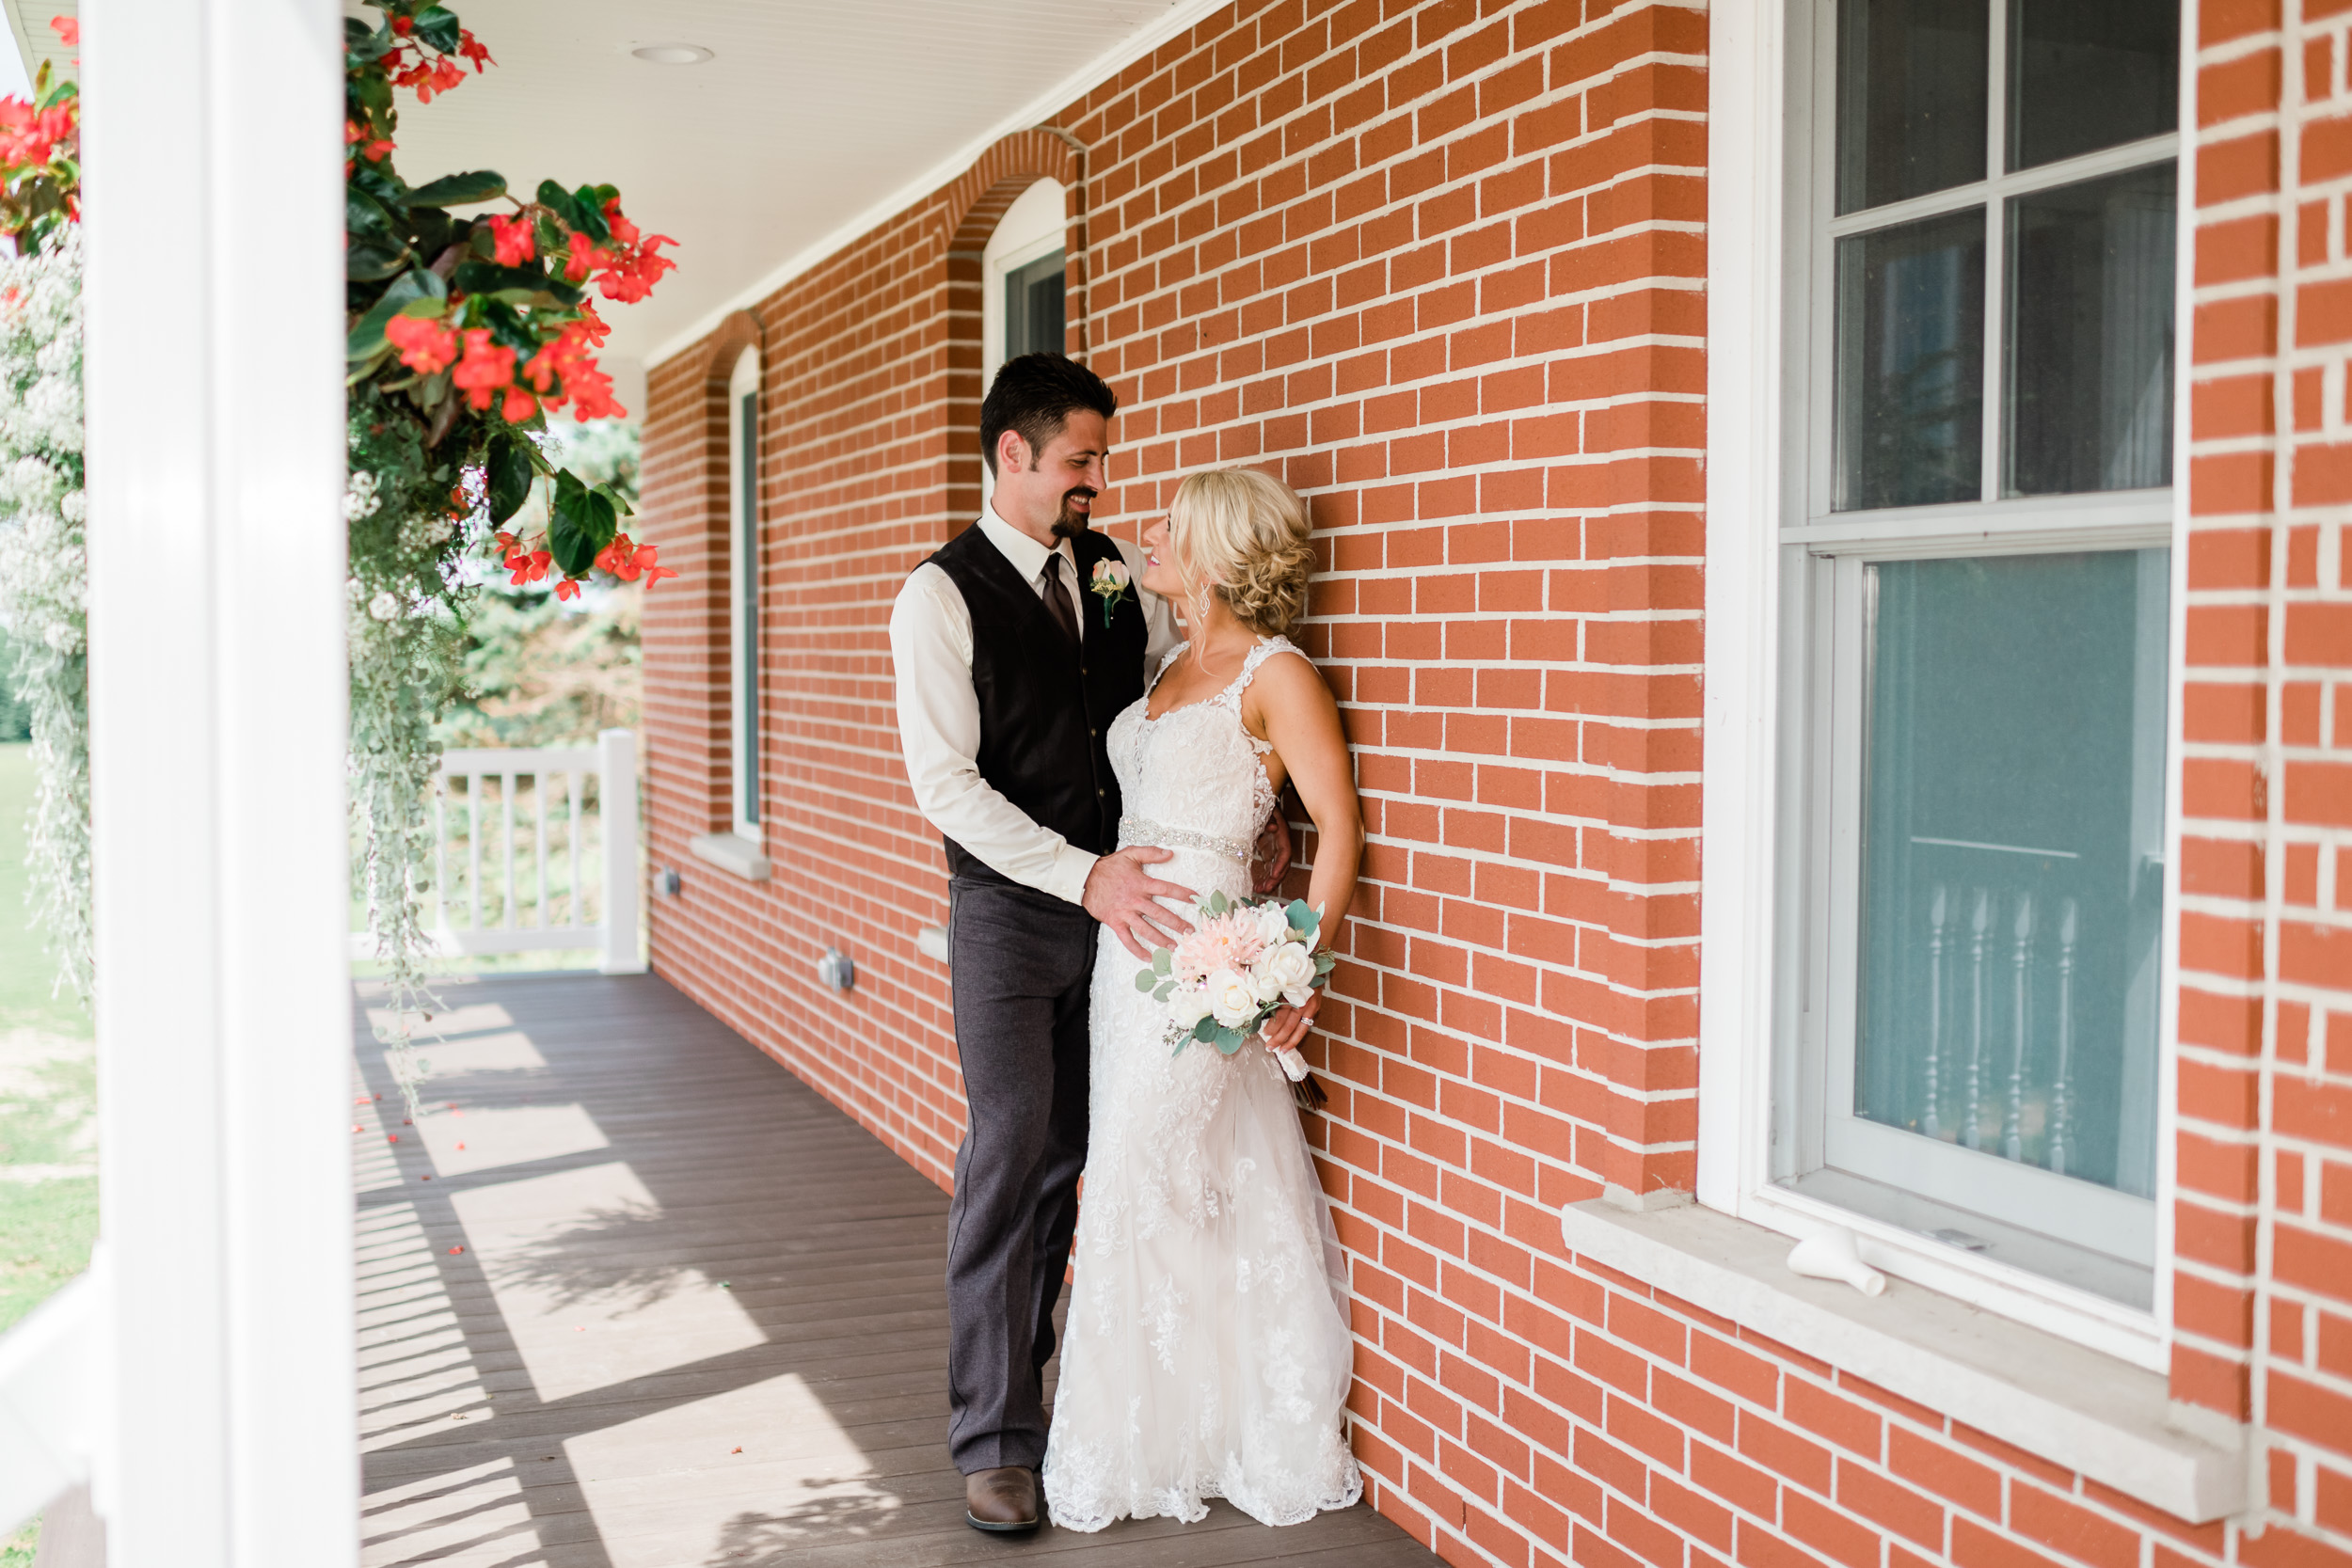 Bride and groom looking at each other on front porch